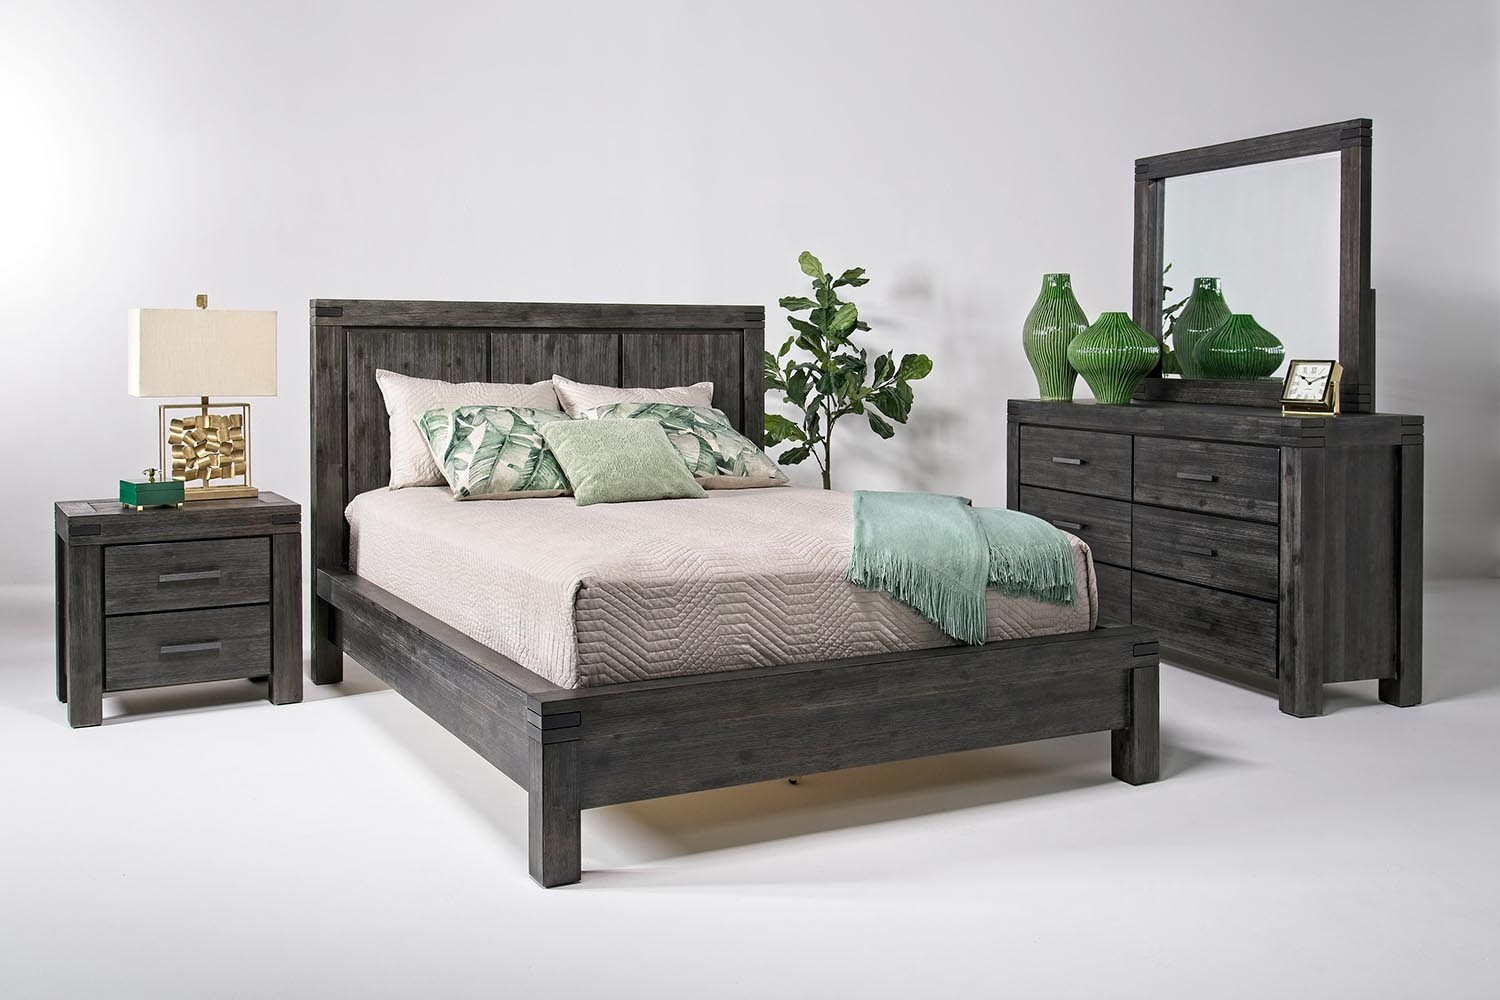 West Coast Home Furniture Stores Mor Furniture For Less